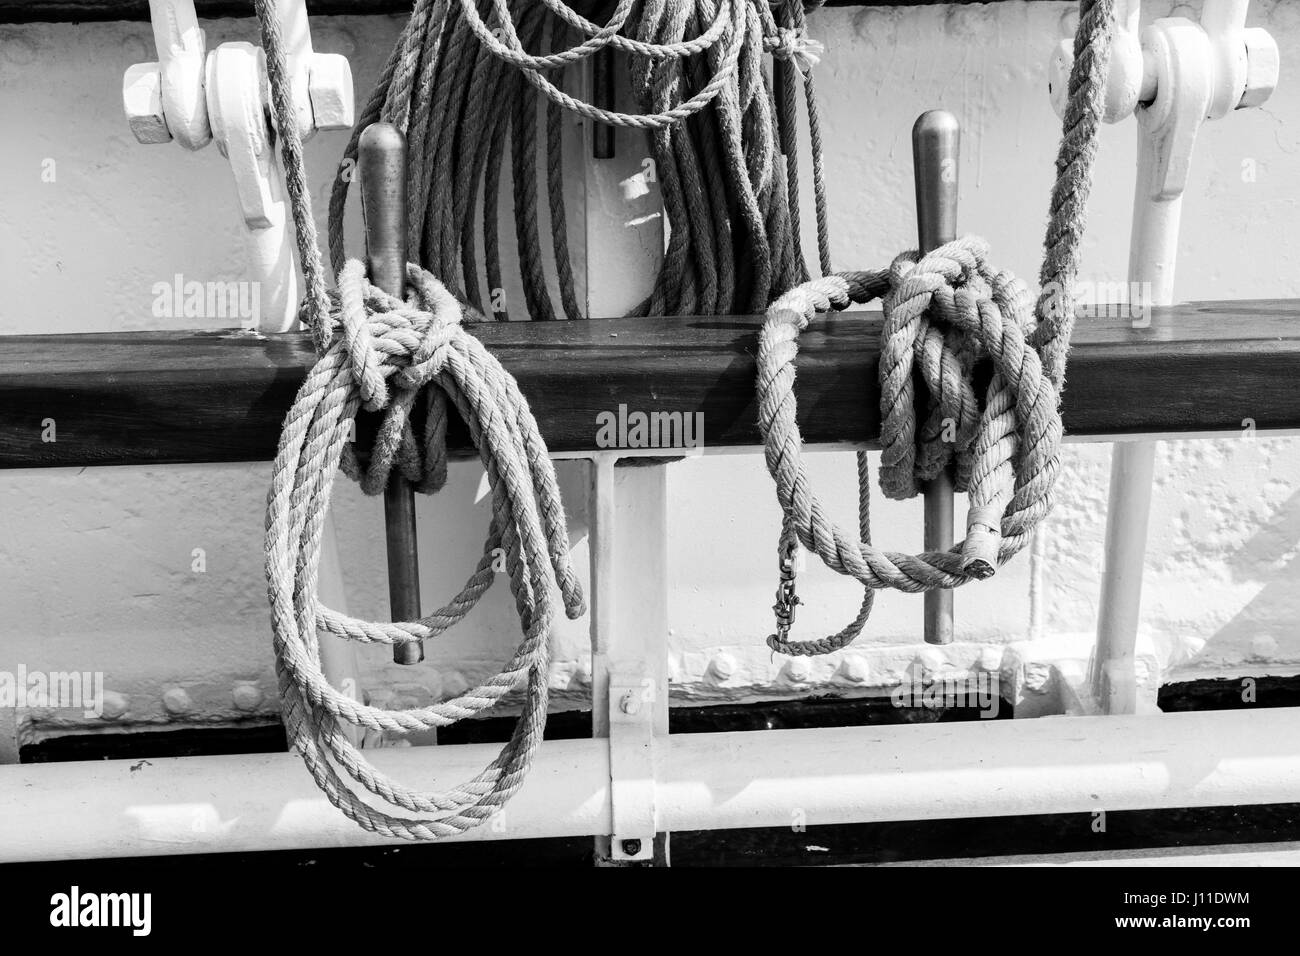 Rolled Ropes Tied Up On Ship Railing - Stock Image